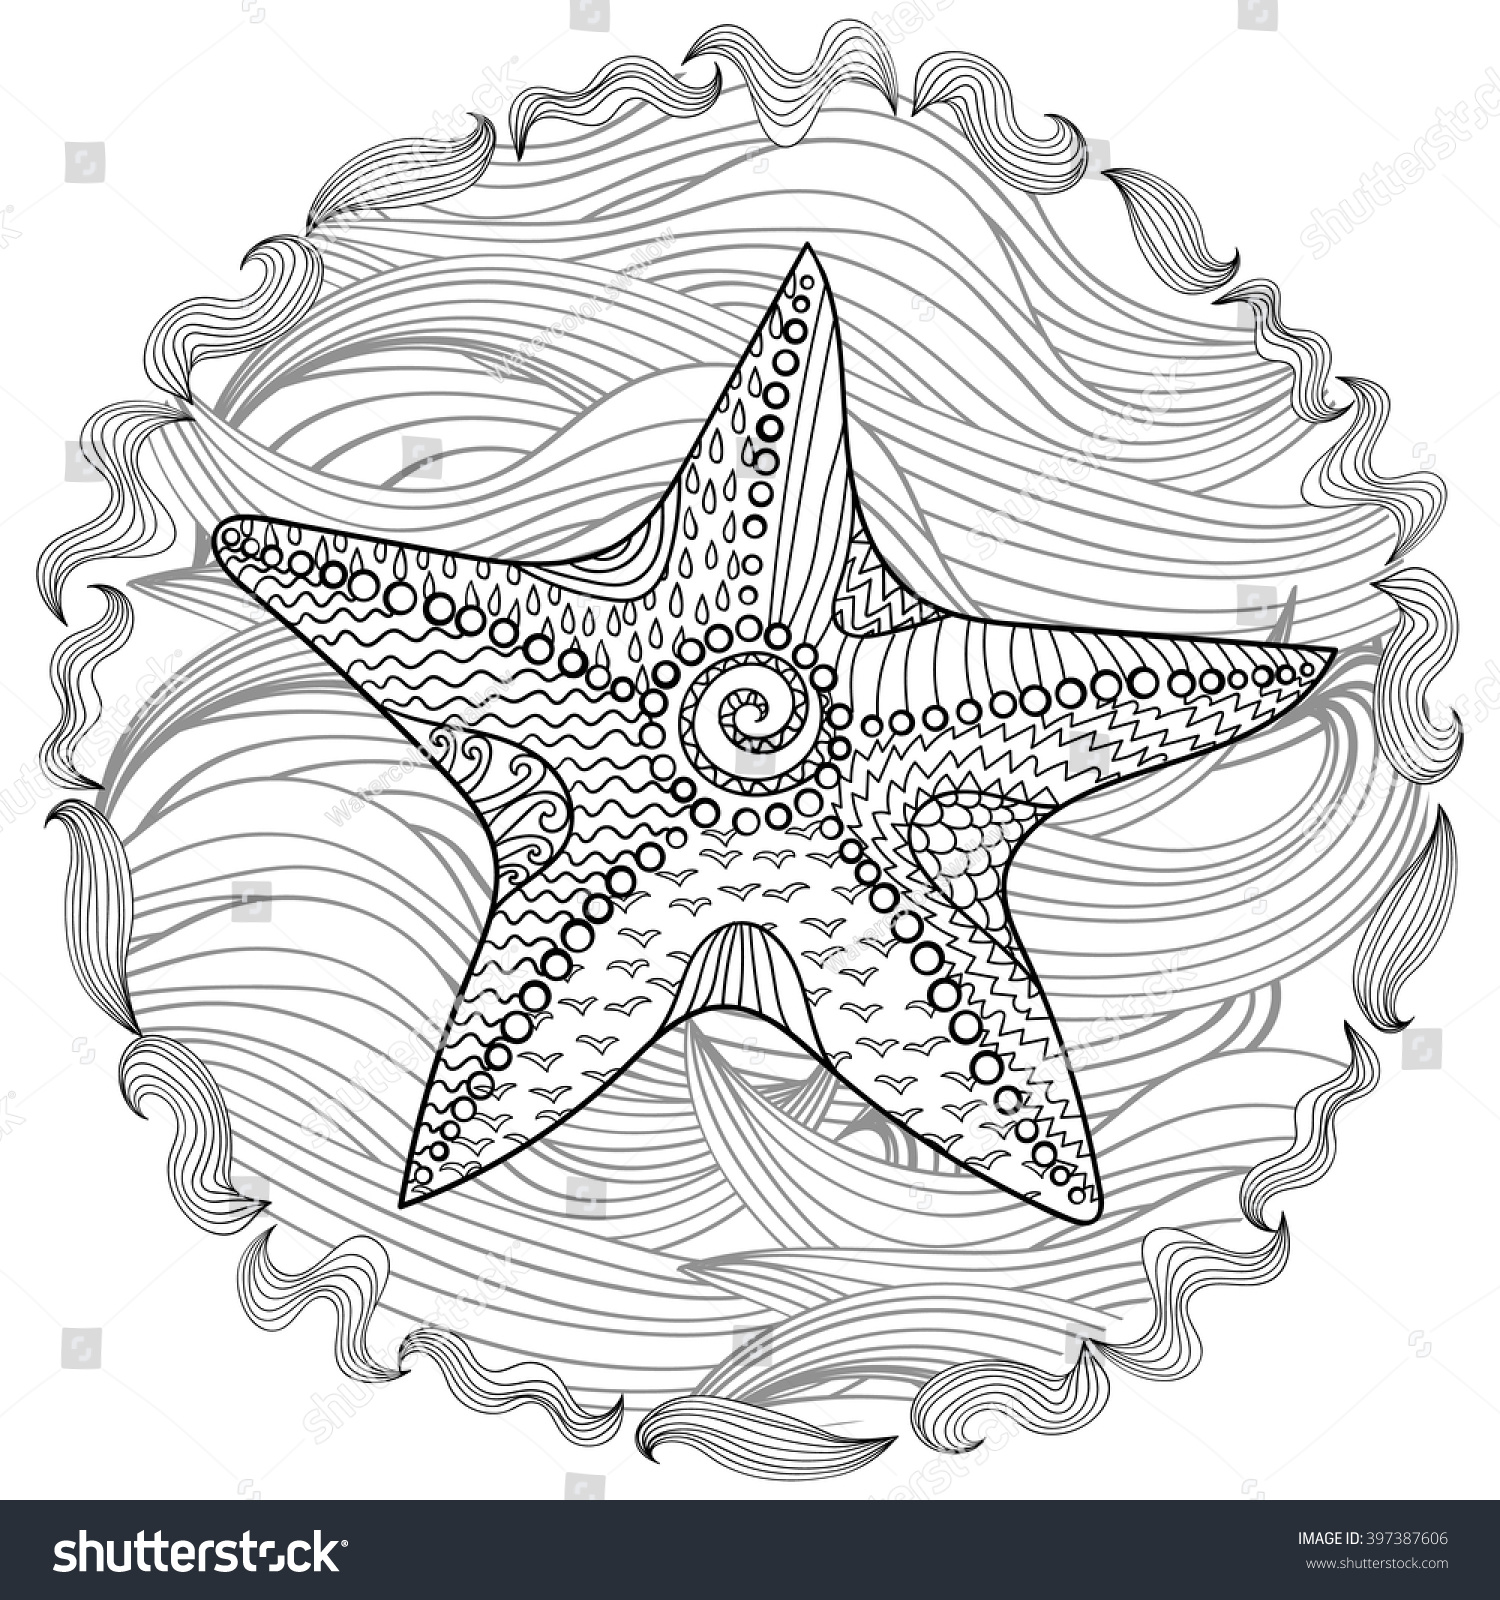 starfish high details antistress coloring stock vector